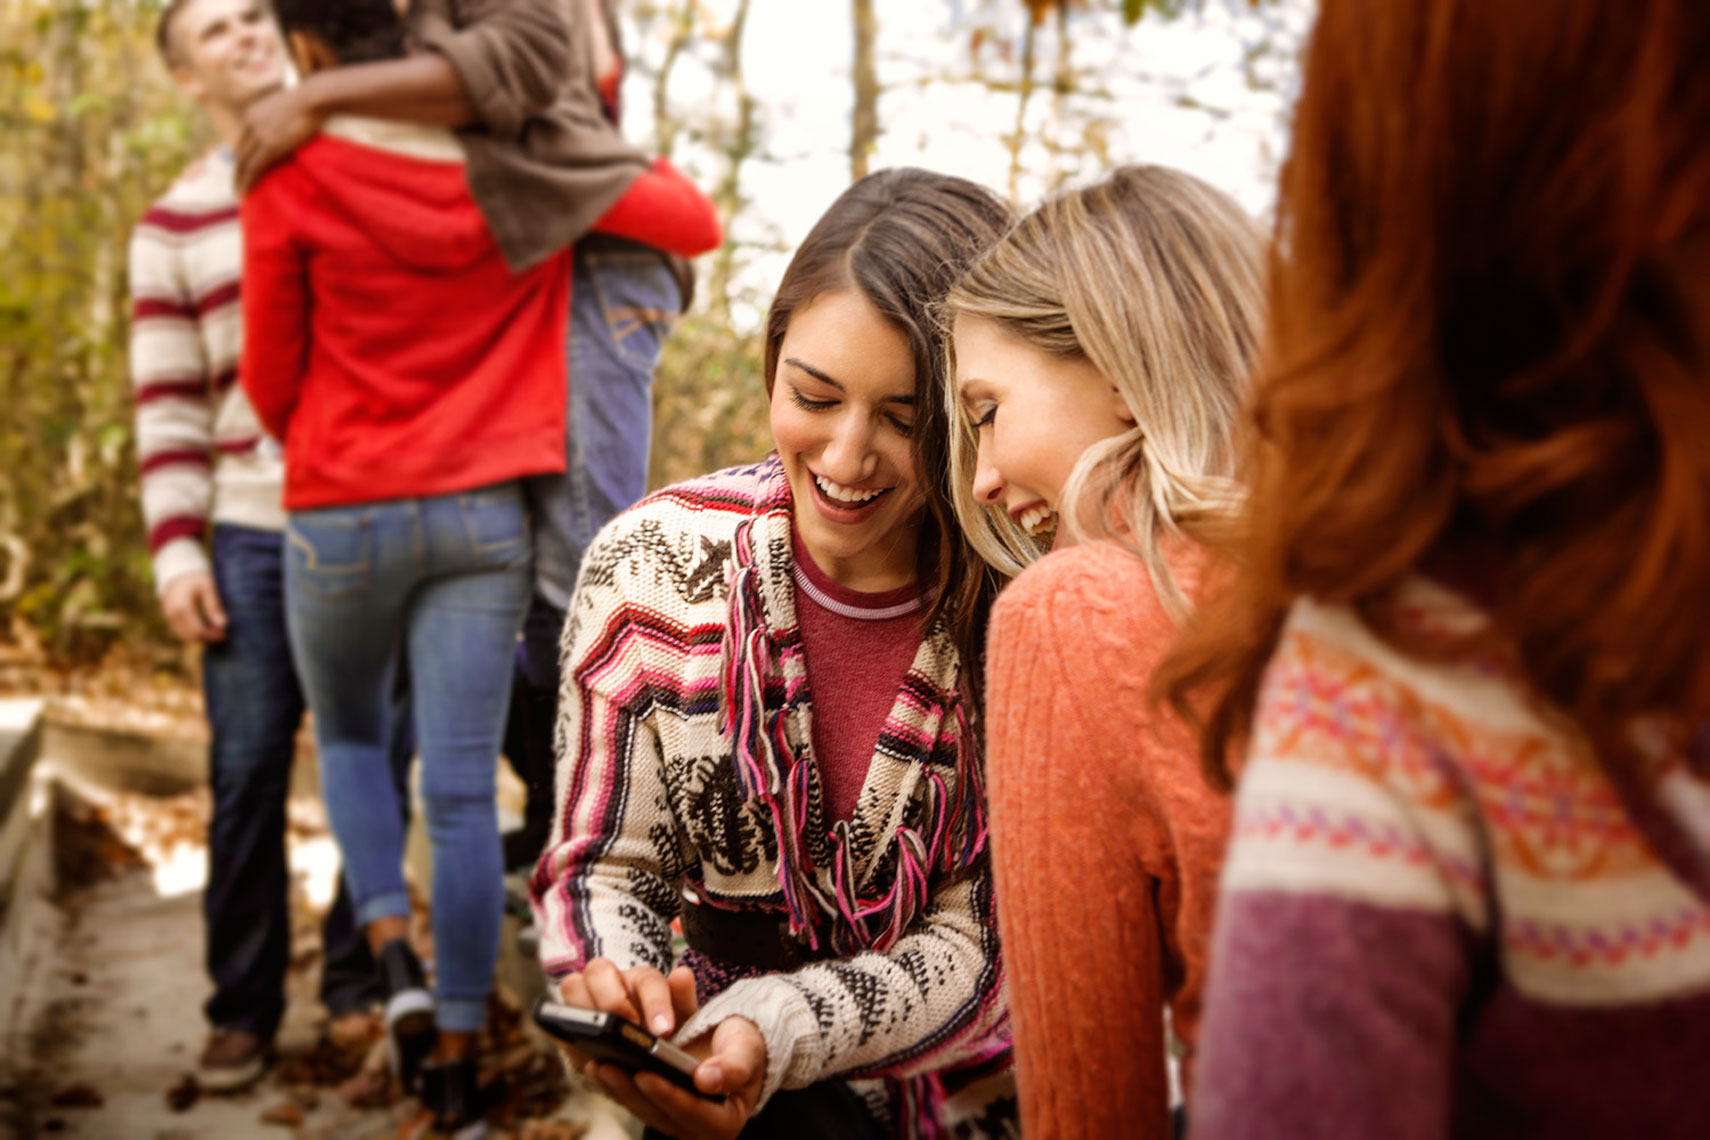 Fall Lifestyle: Young Women Laughing Portrait: CORBIS